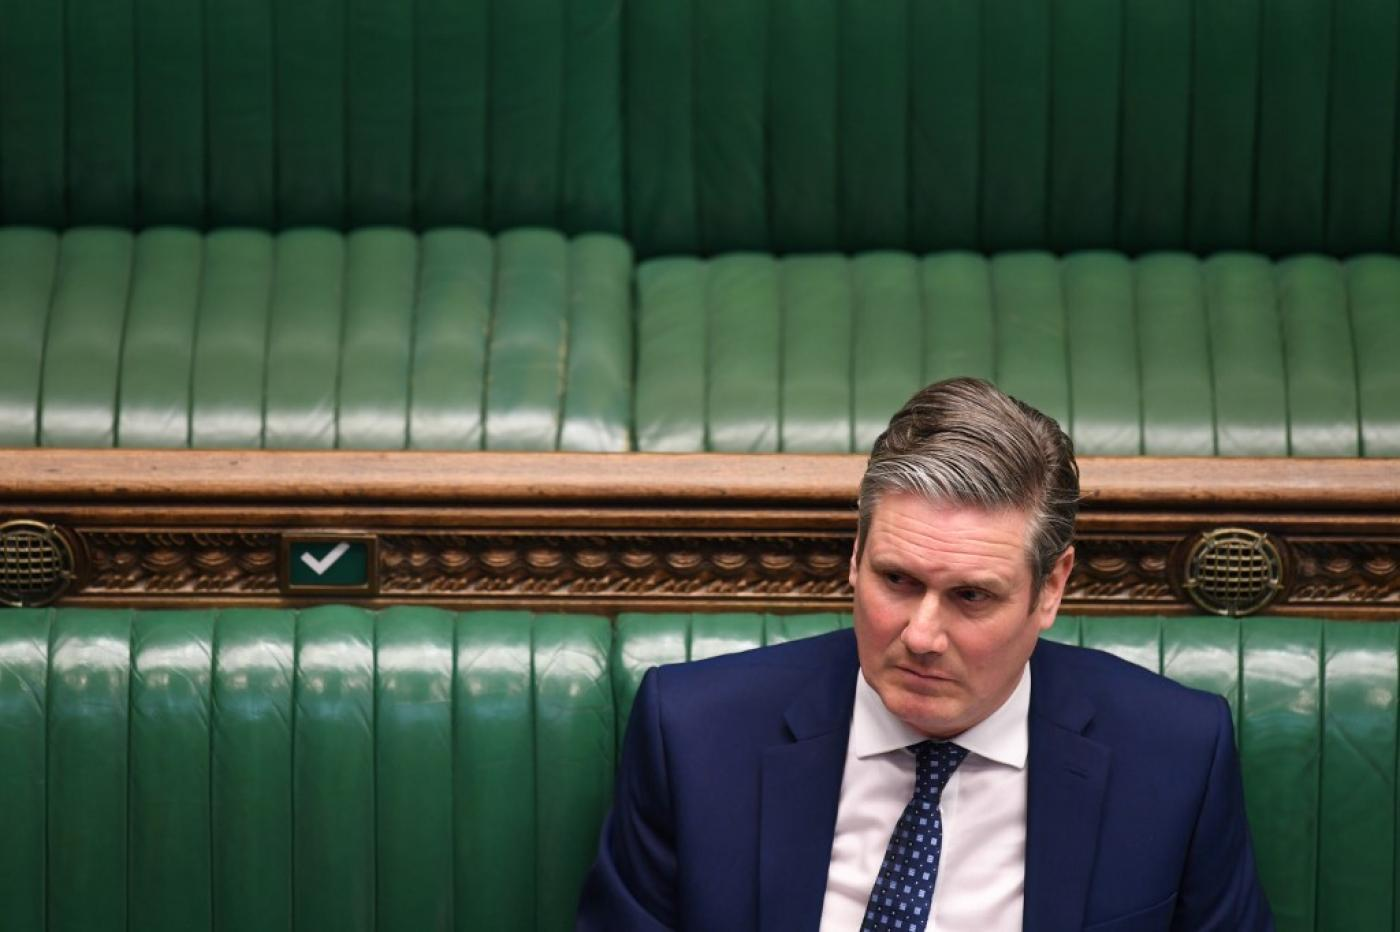 Keir Starmer Shifts Labour Party Policy on Kashmir in Bid to Woo Indian Voters